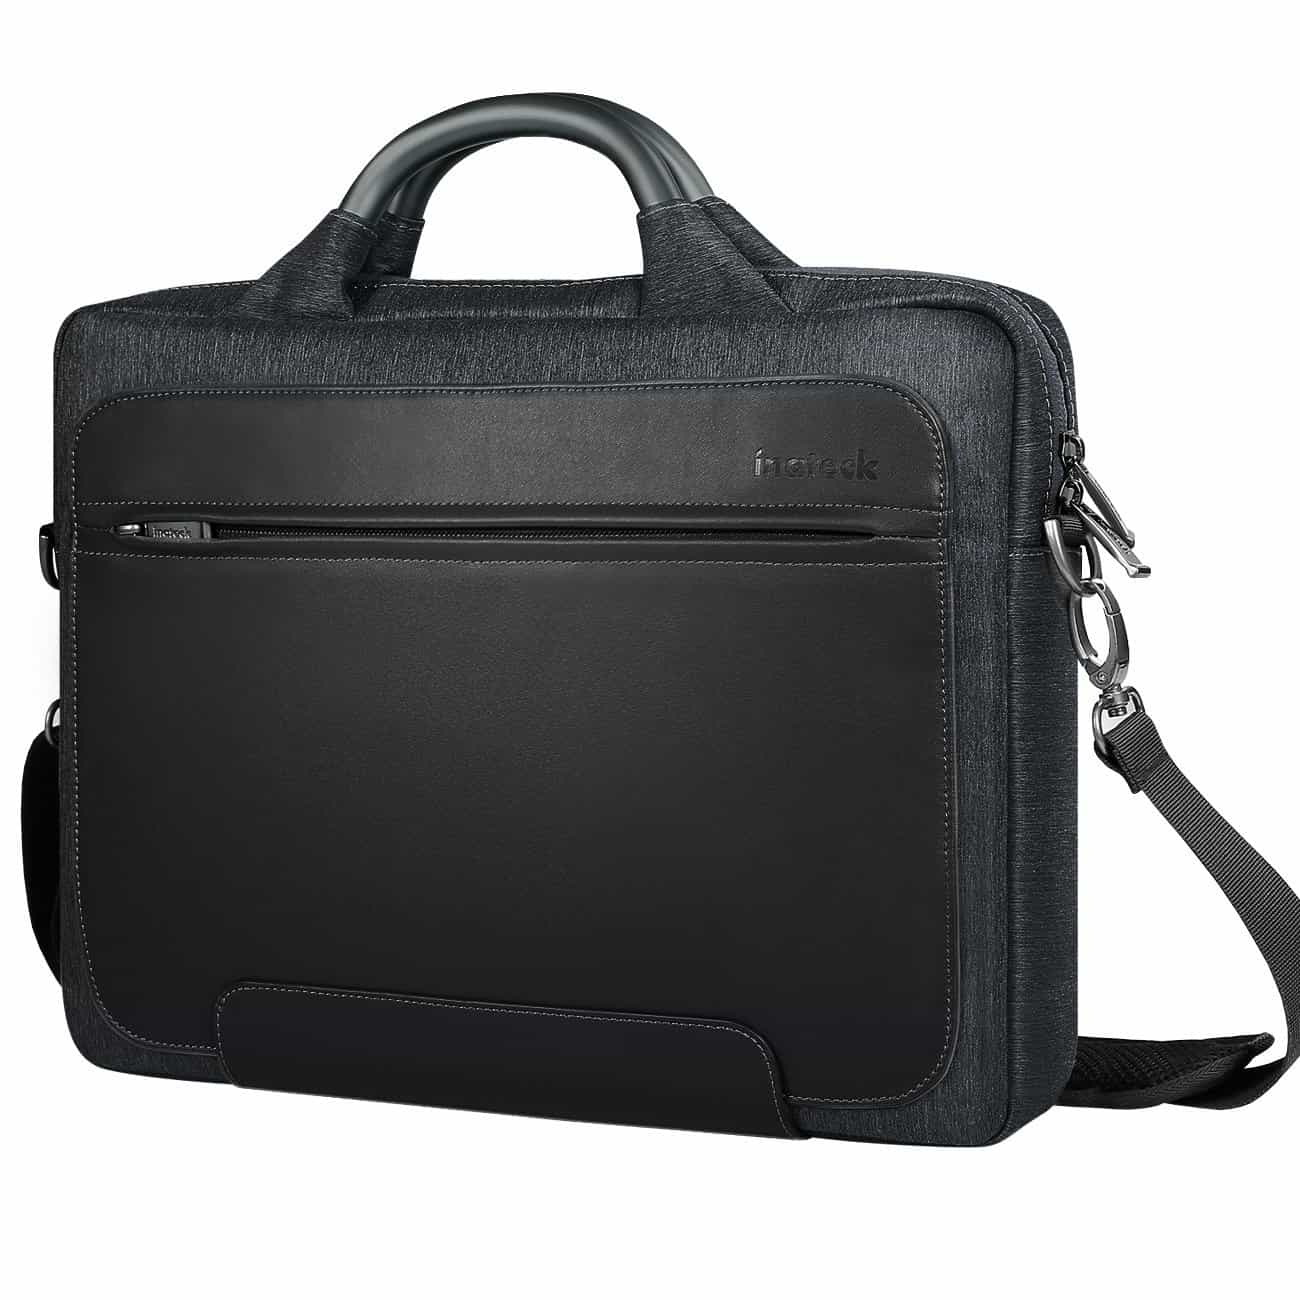 Inateck LB1406 Laptop Shoulder Bag Review